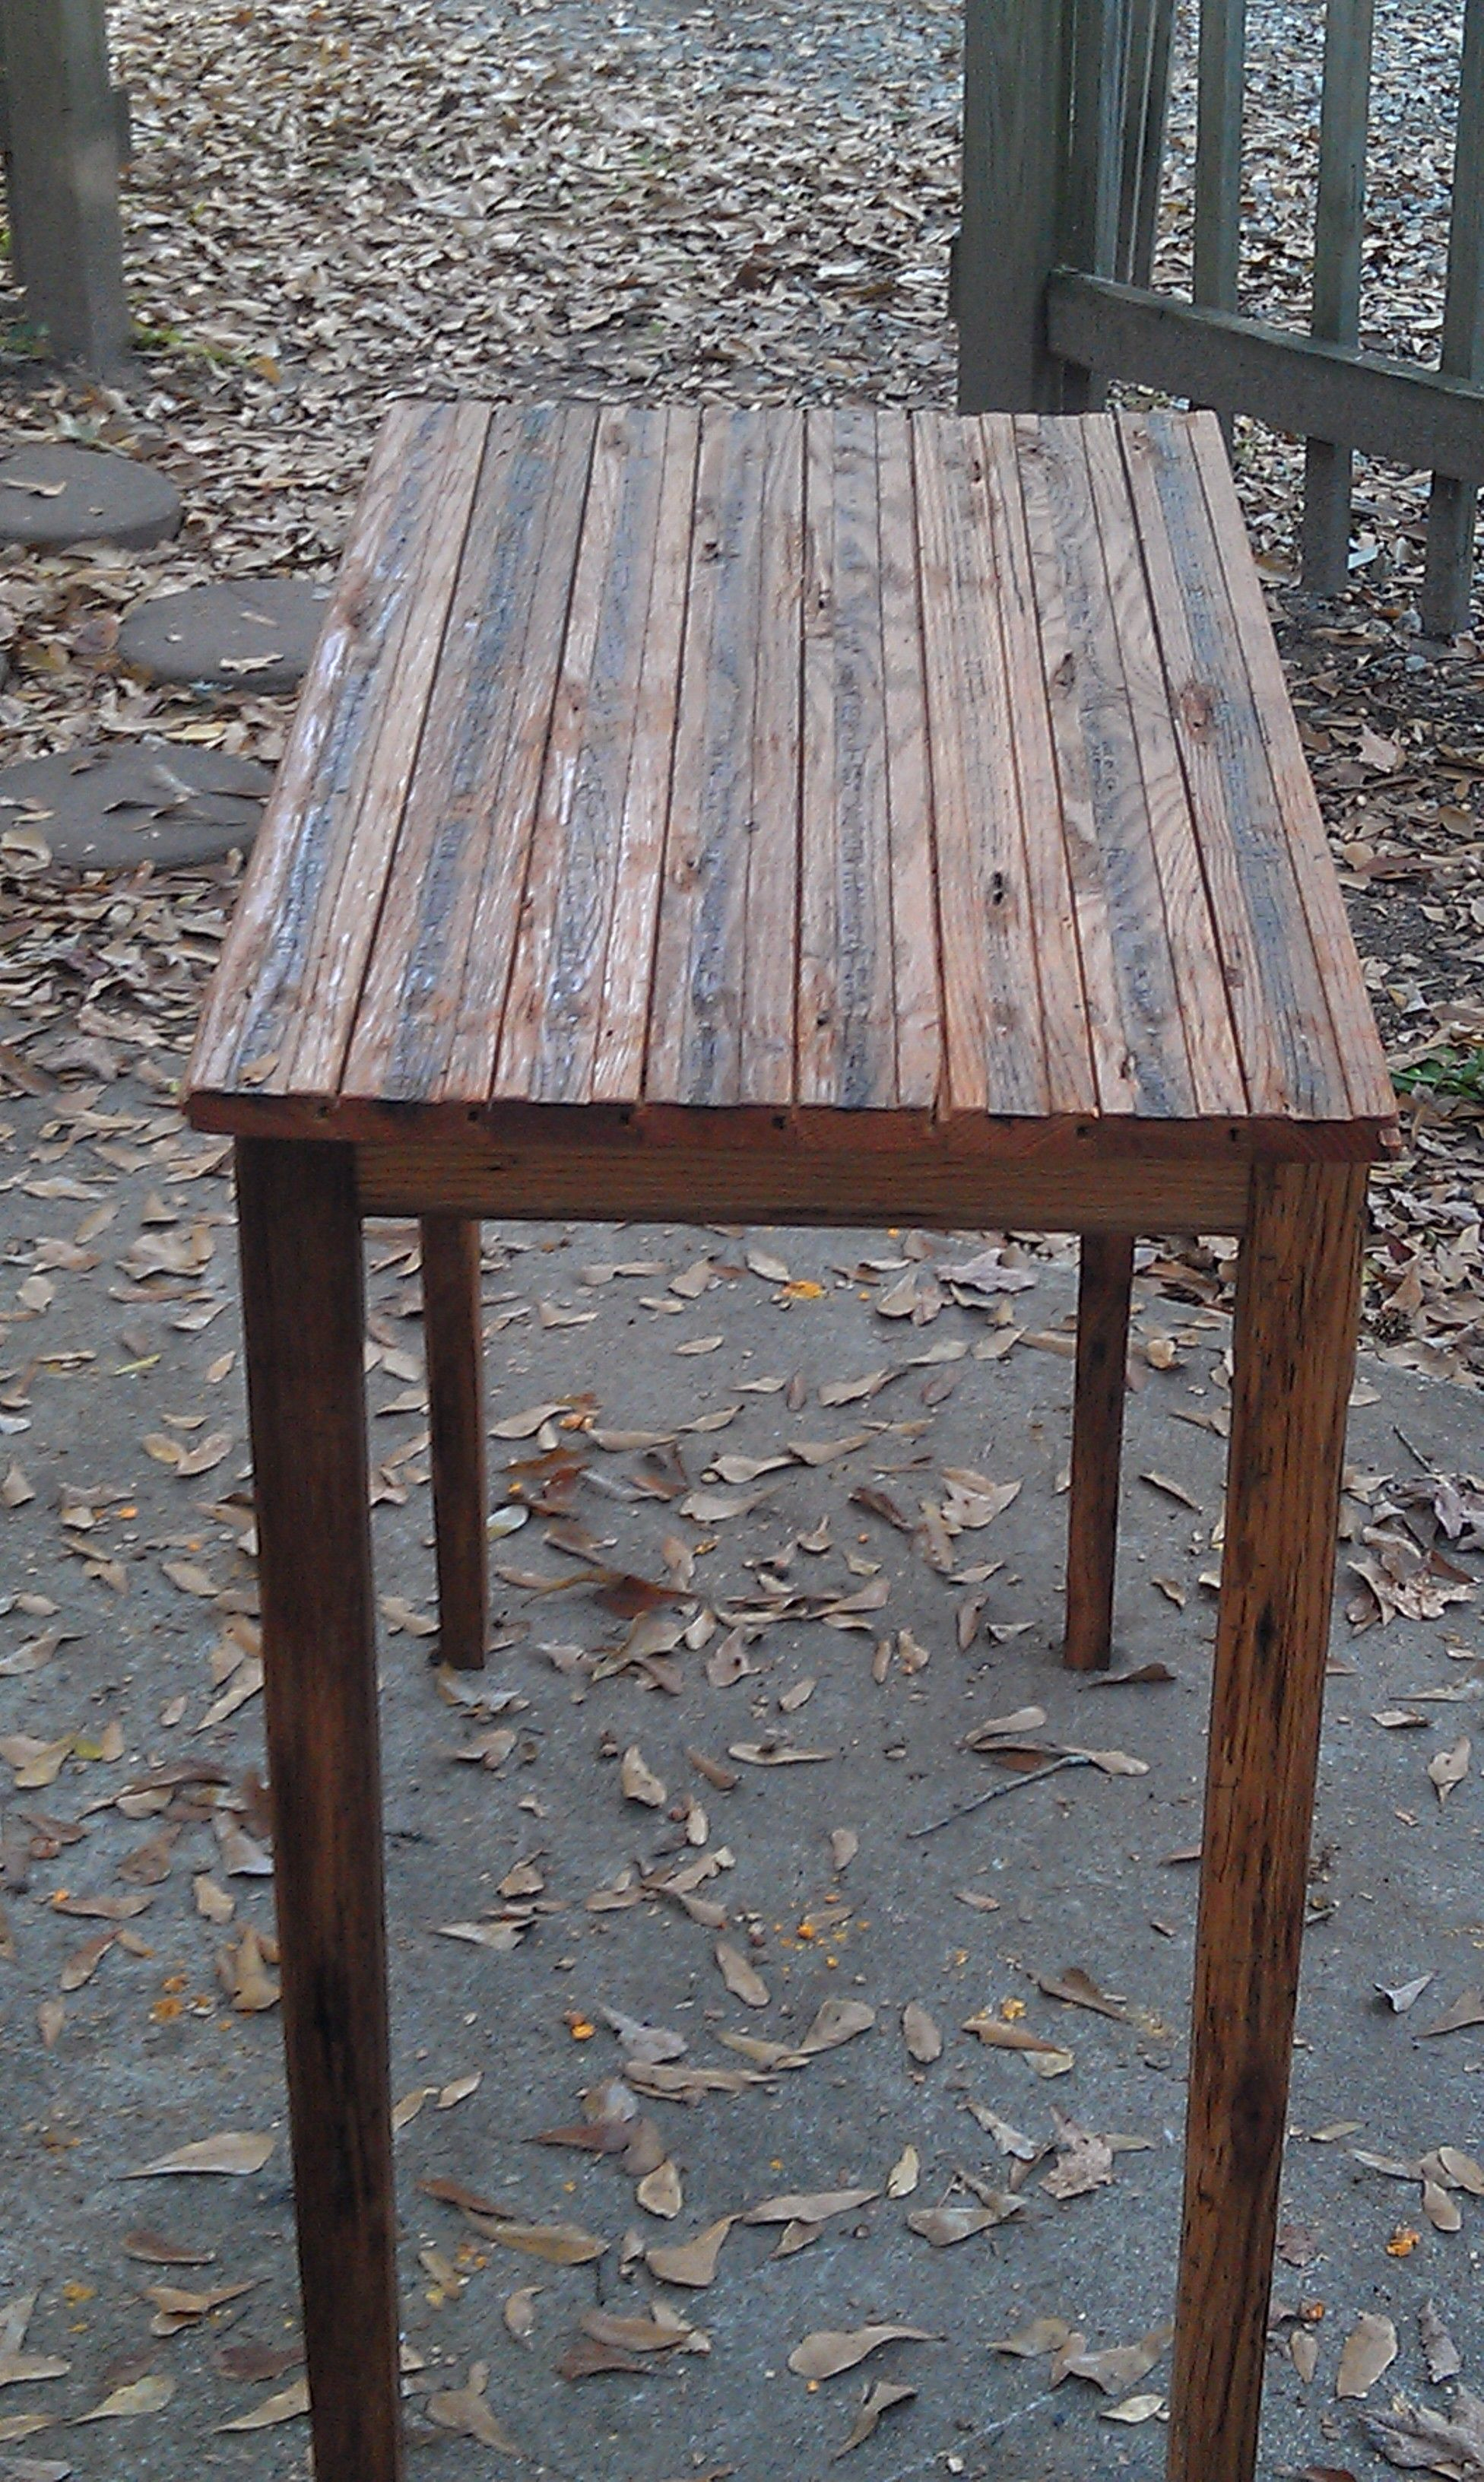 18 X 36 Table Base From Reclaimed Barn Wood Top From Antique Tongue And Groove Oak Flooring Finish Of Linseed Oil And Ora Reclaimed Barn Wood Barn Wood Wood